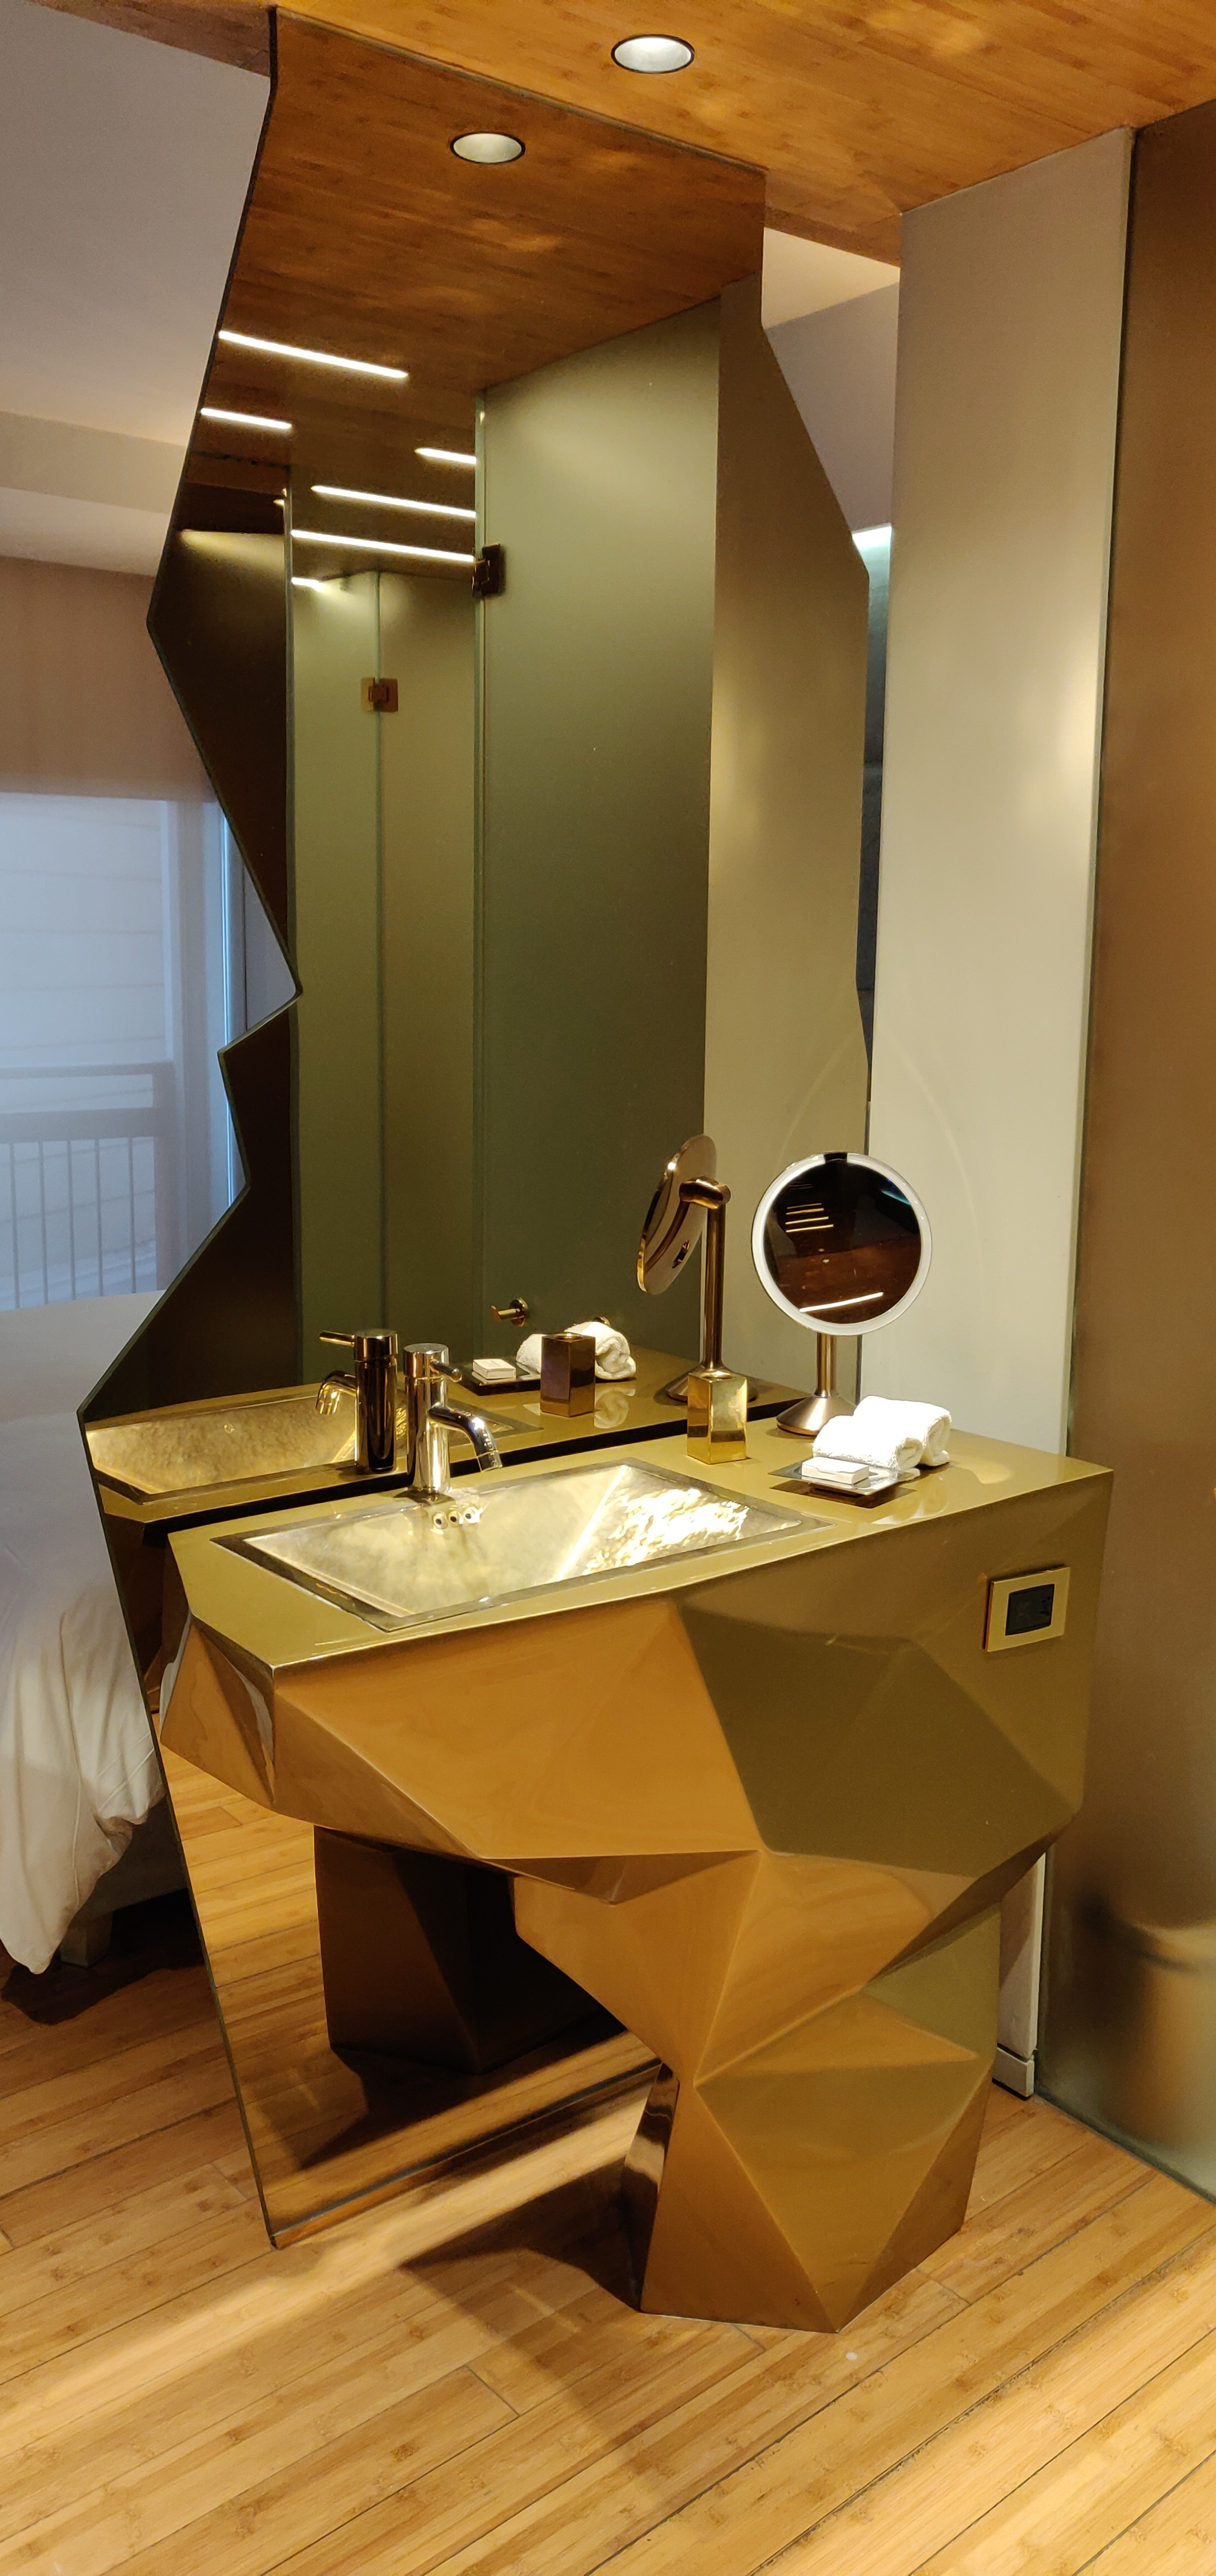 NEW Hotel, Athens - Sink